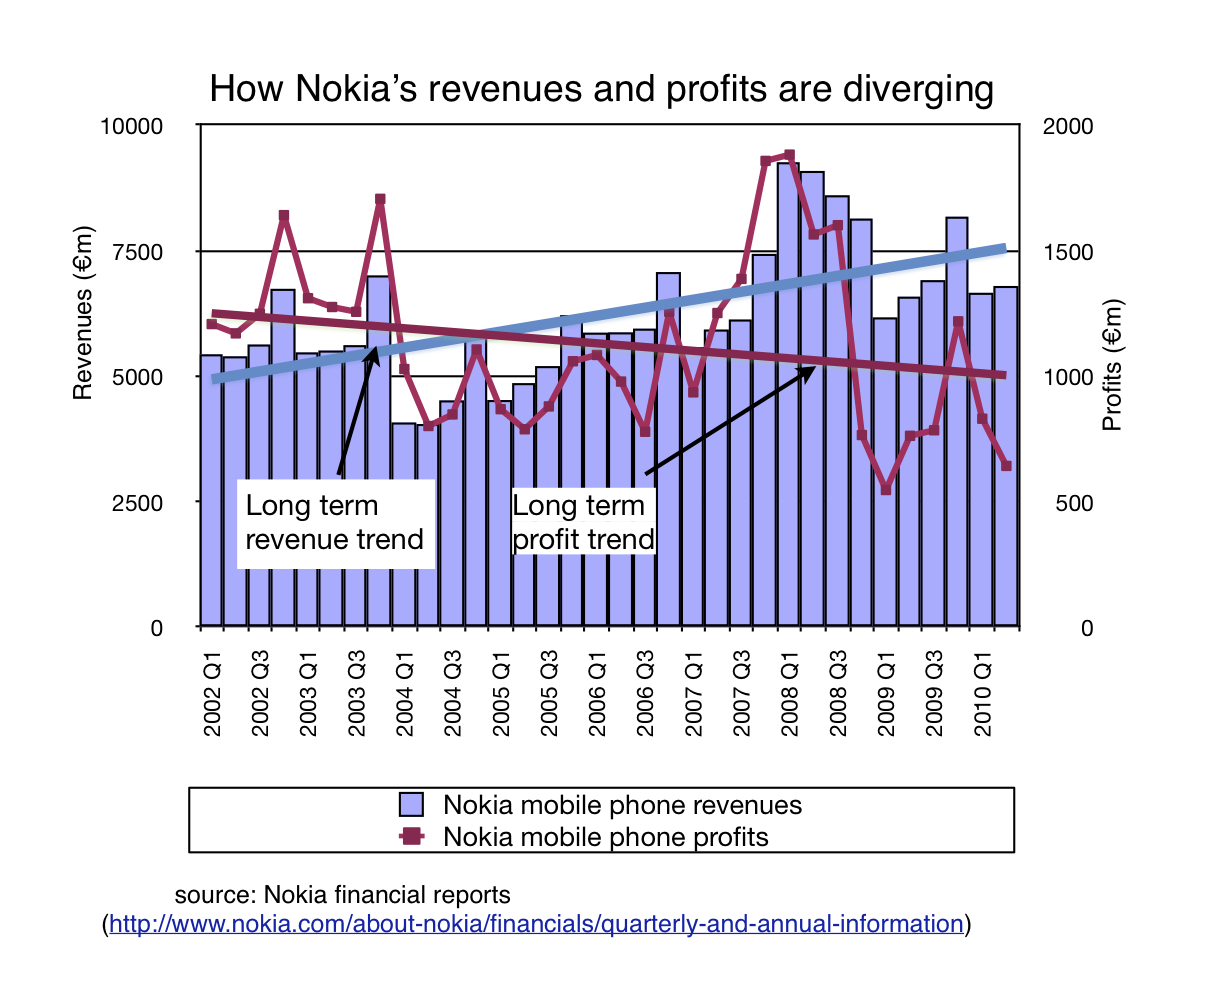 nokias revenue and profit trends point to its key problem commoditisation technology theguardiancom